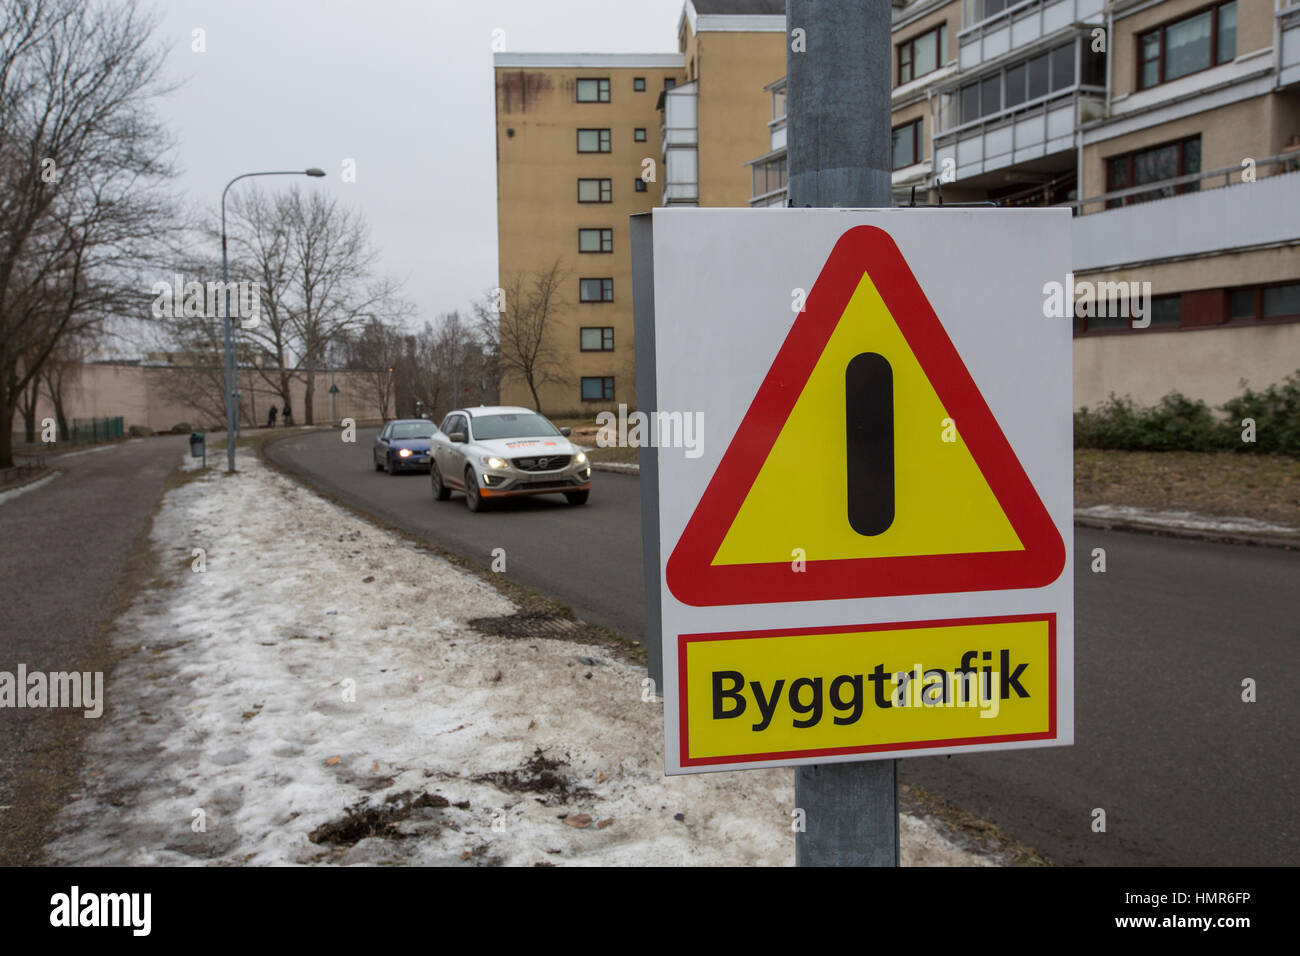 Pay attention, construction traffic in the area, Kista, Stockholm, Sweden. - Stock Image